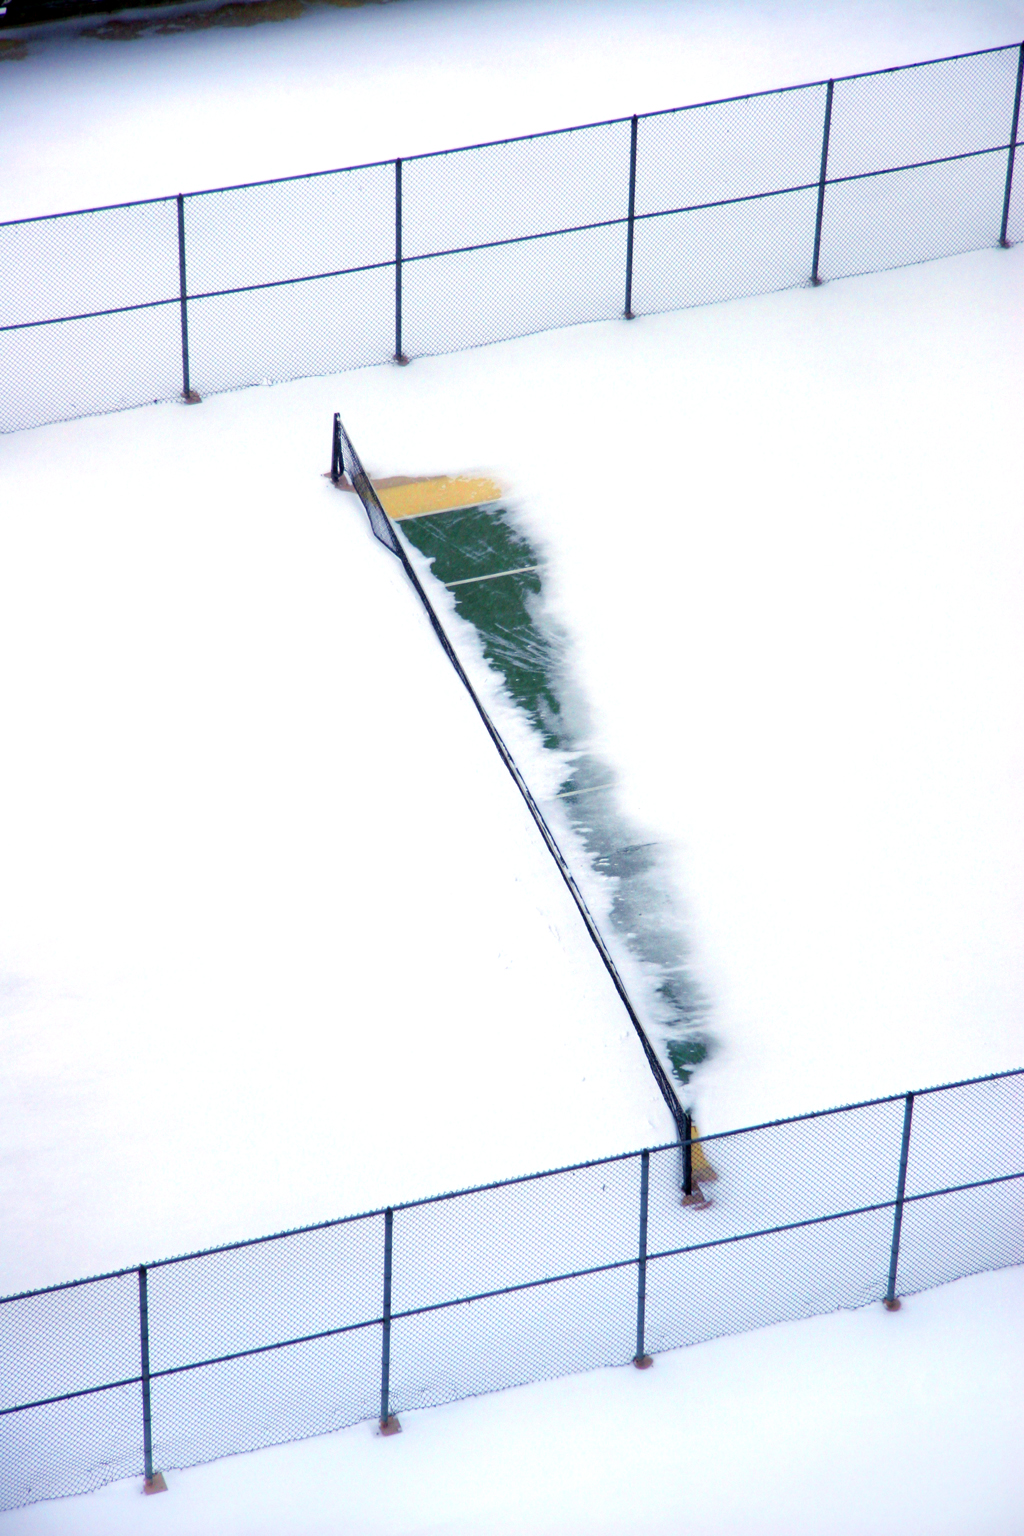 tennis court in snow author chepikian paul